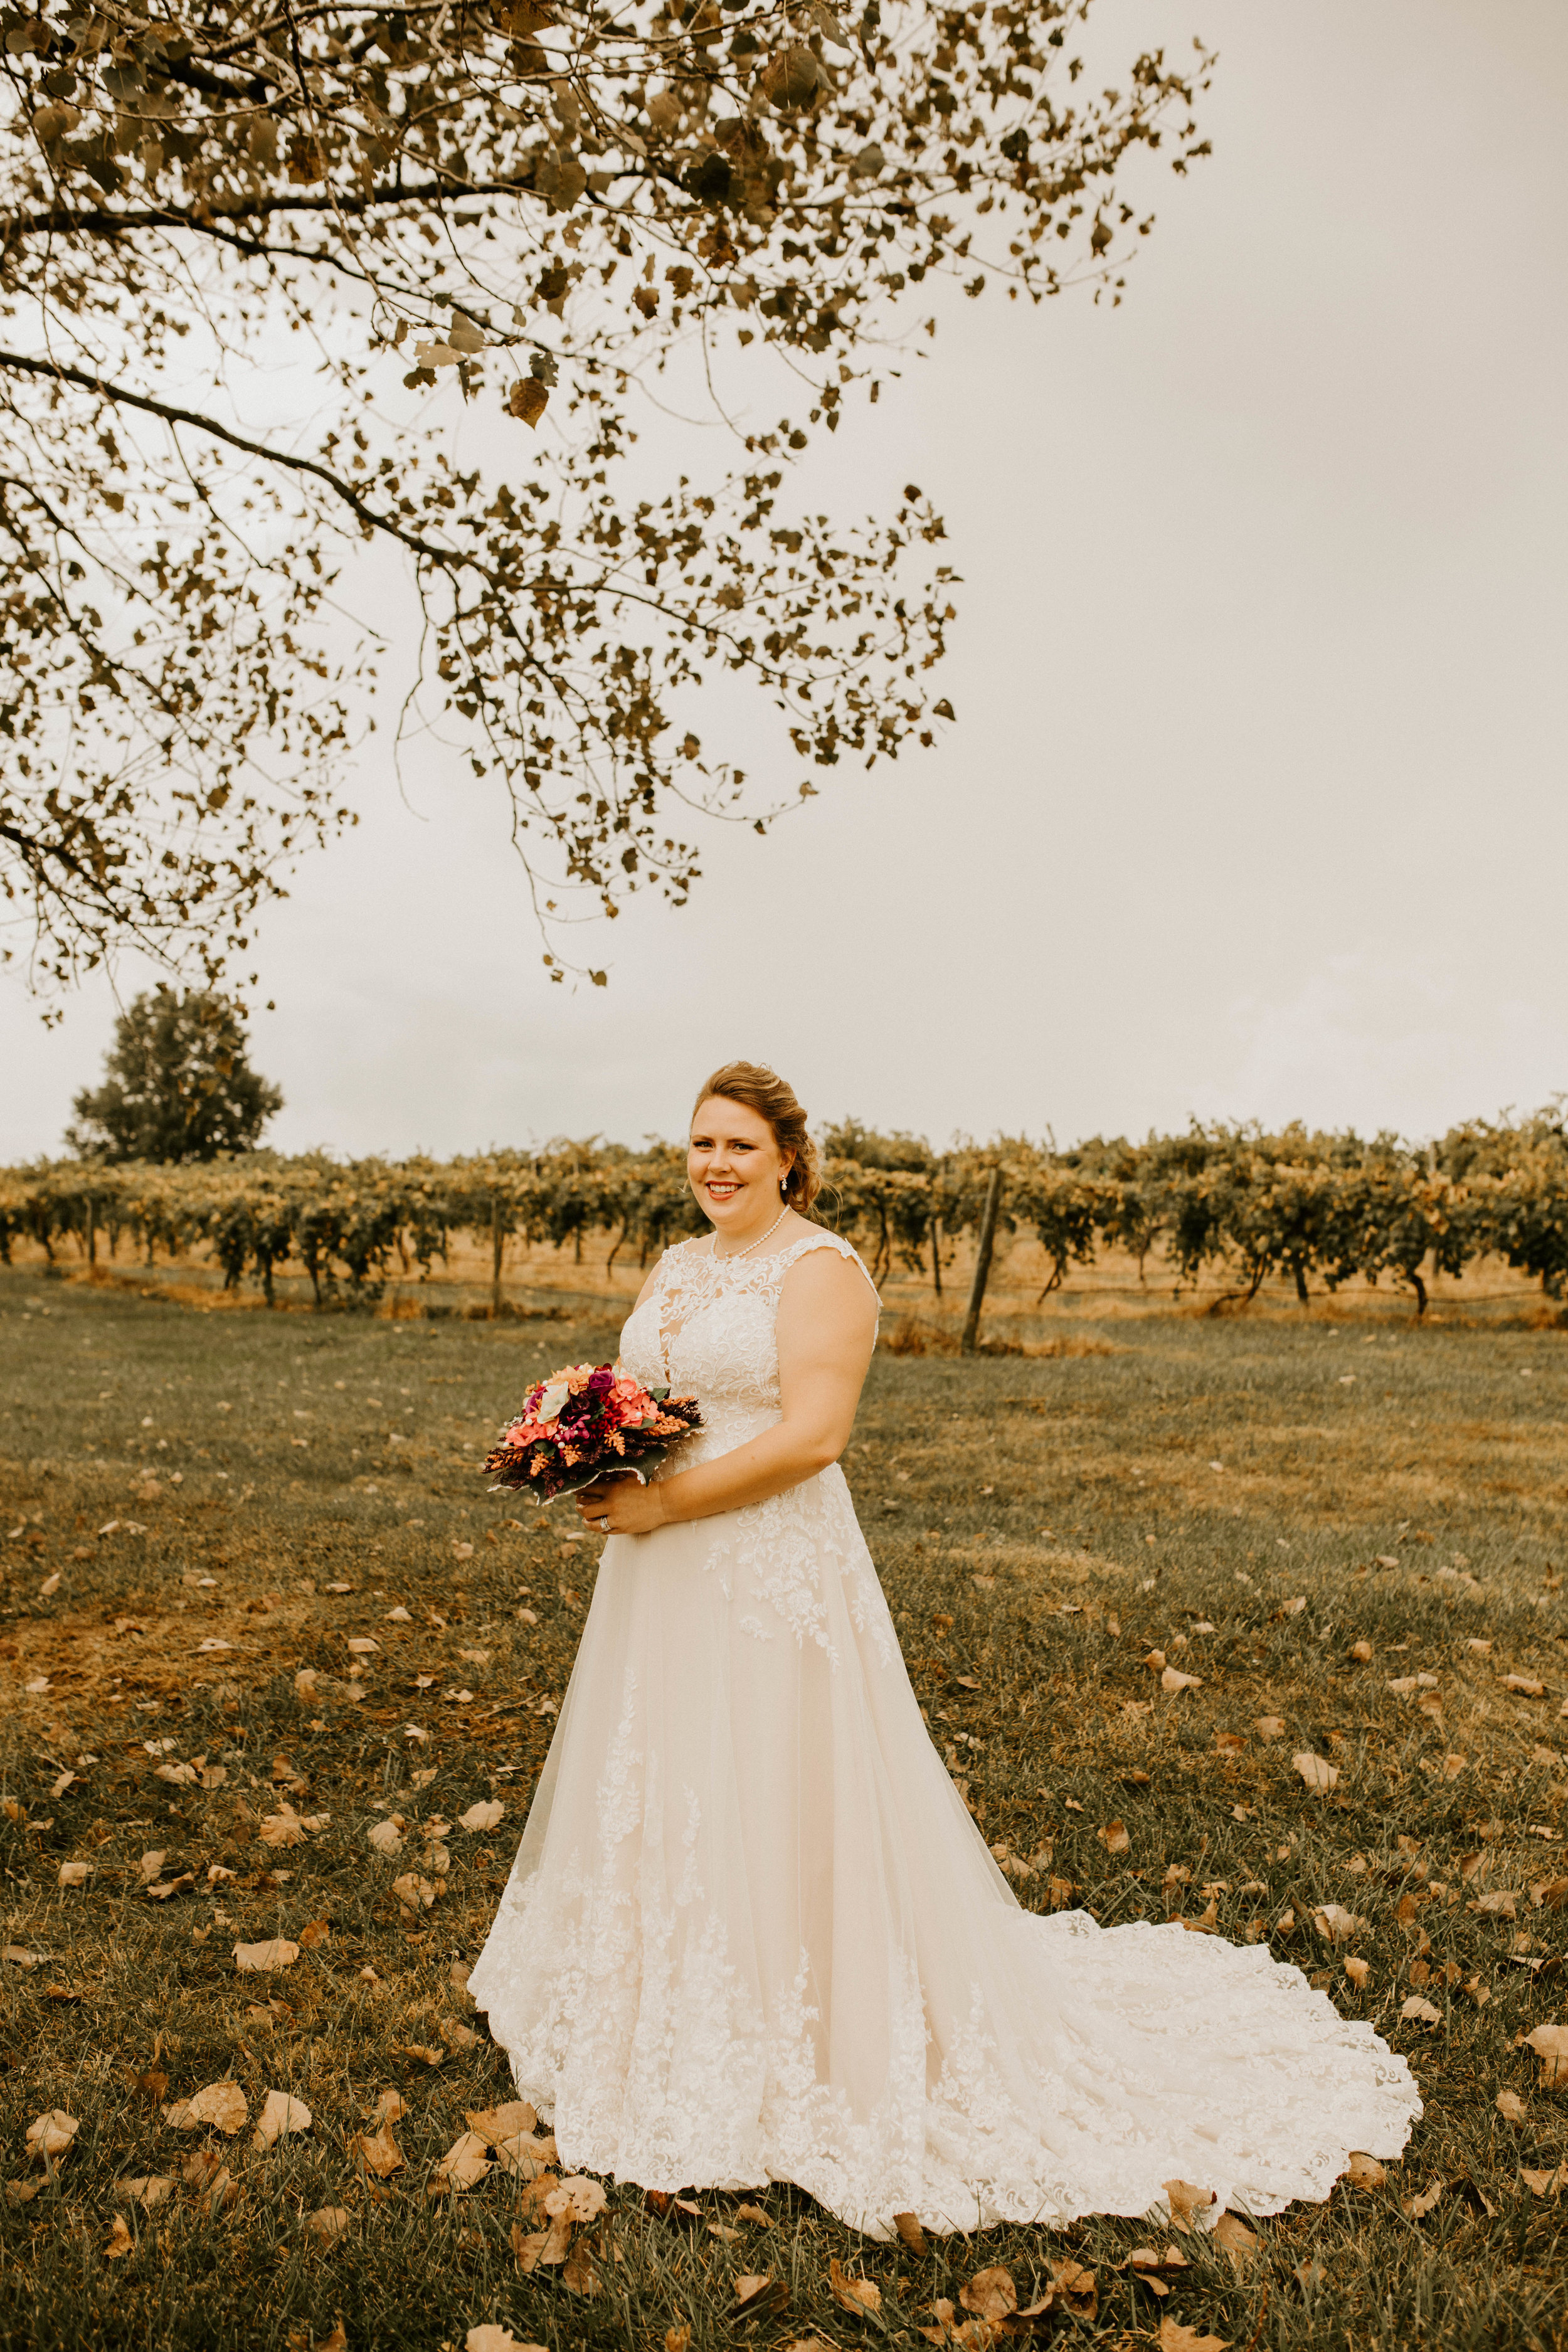 Wedding at Sugar Creek Winery  Maranda and Zac's Wedding Day  Defiance, Missouri  Phoenix Wedding Photographer95.jpg